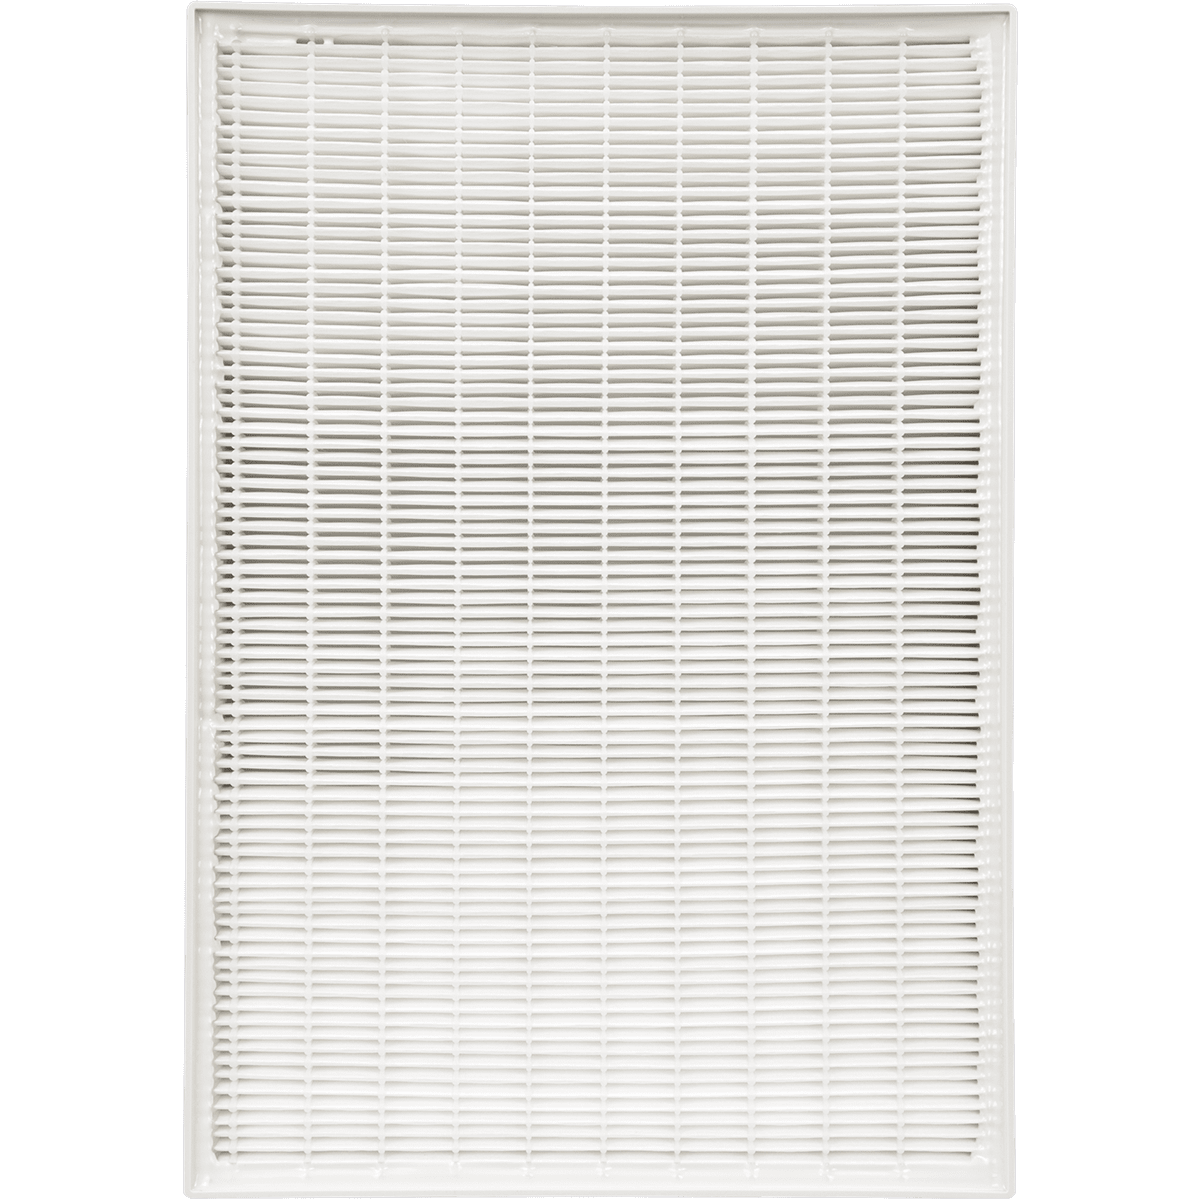 Filter-Monster Small HEPA Filter for Whirlpool Air Purifiers wh6364